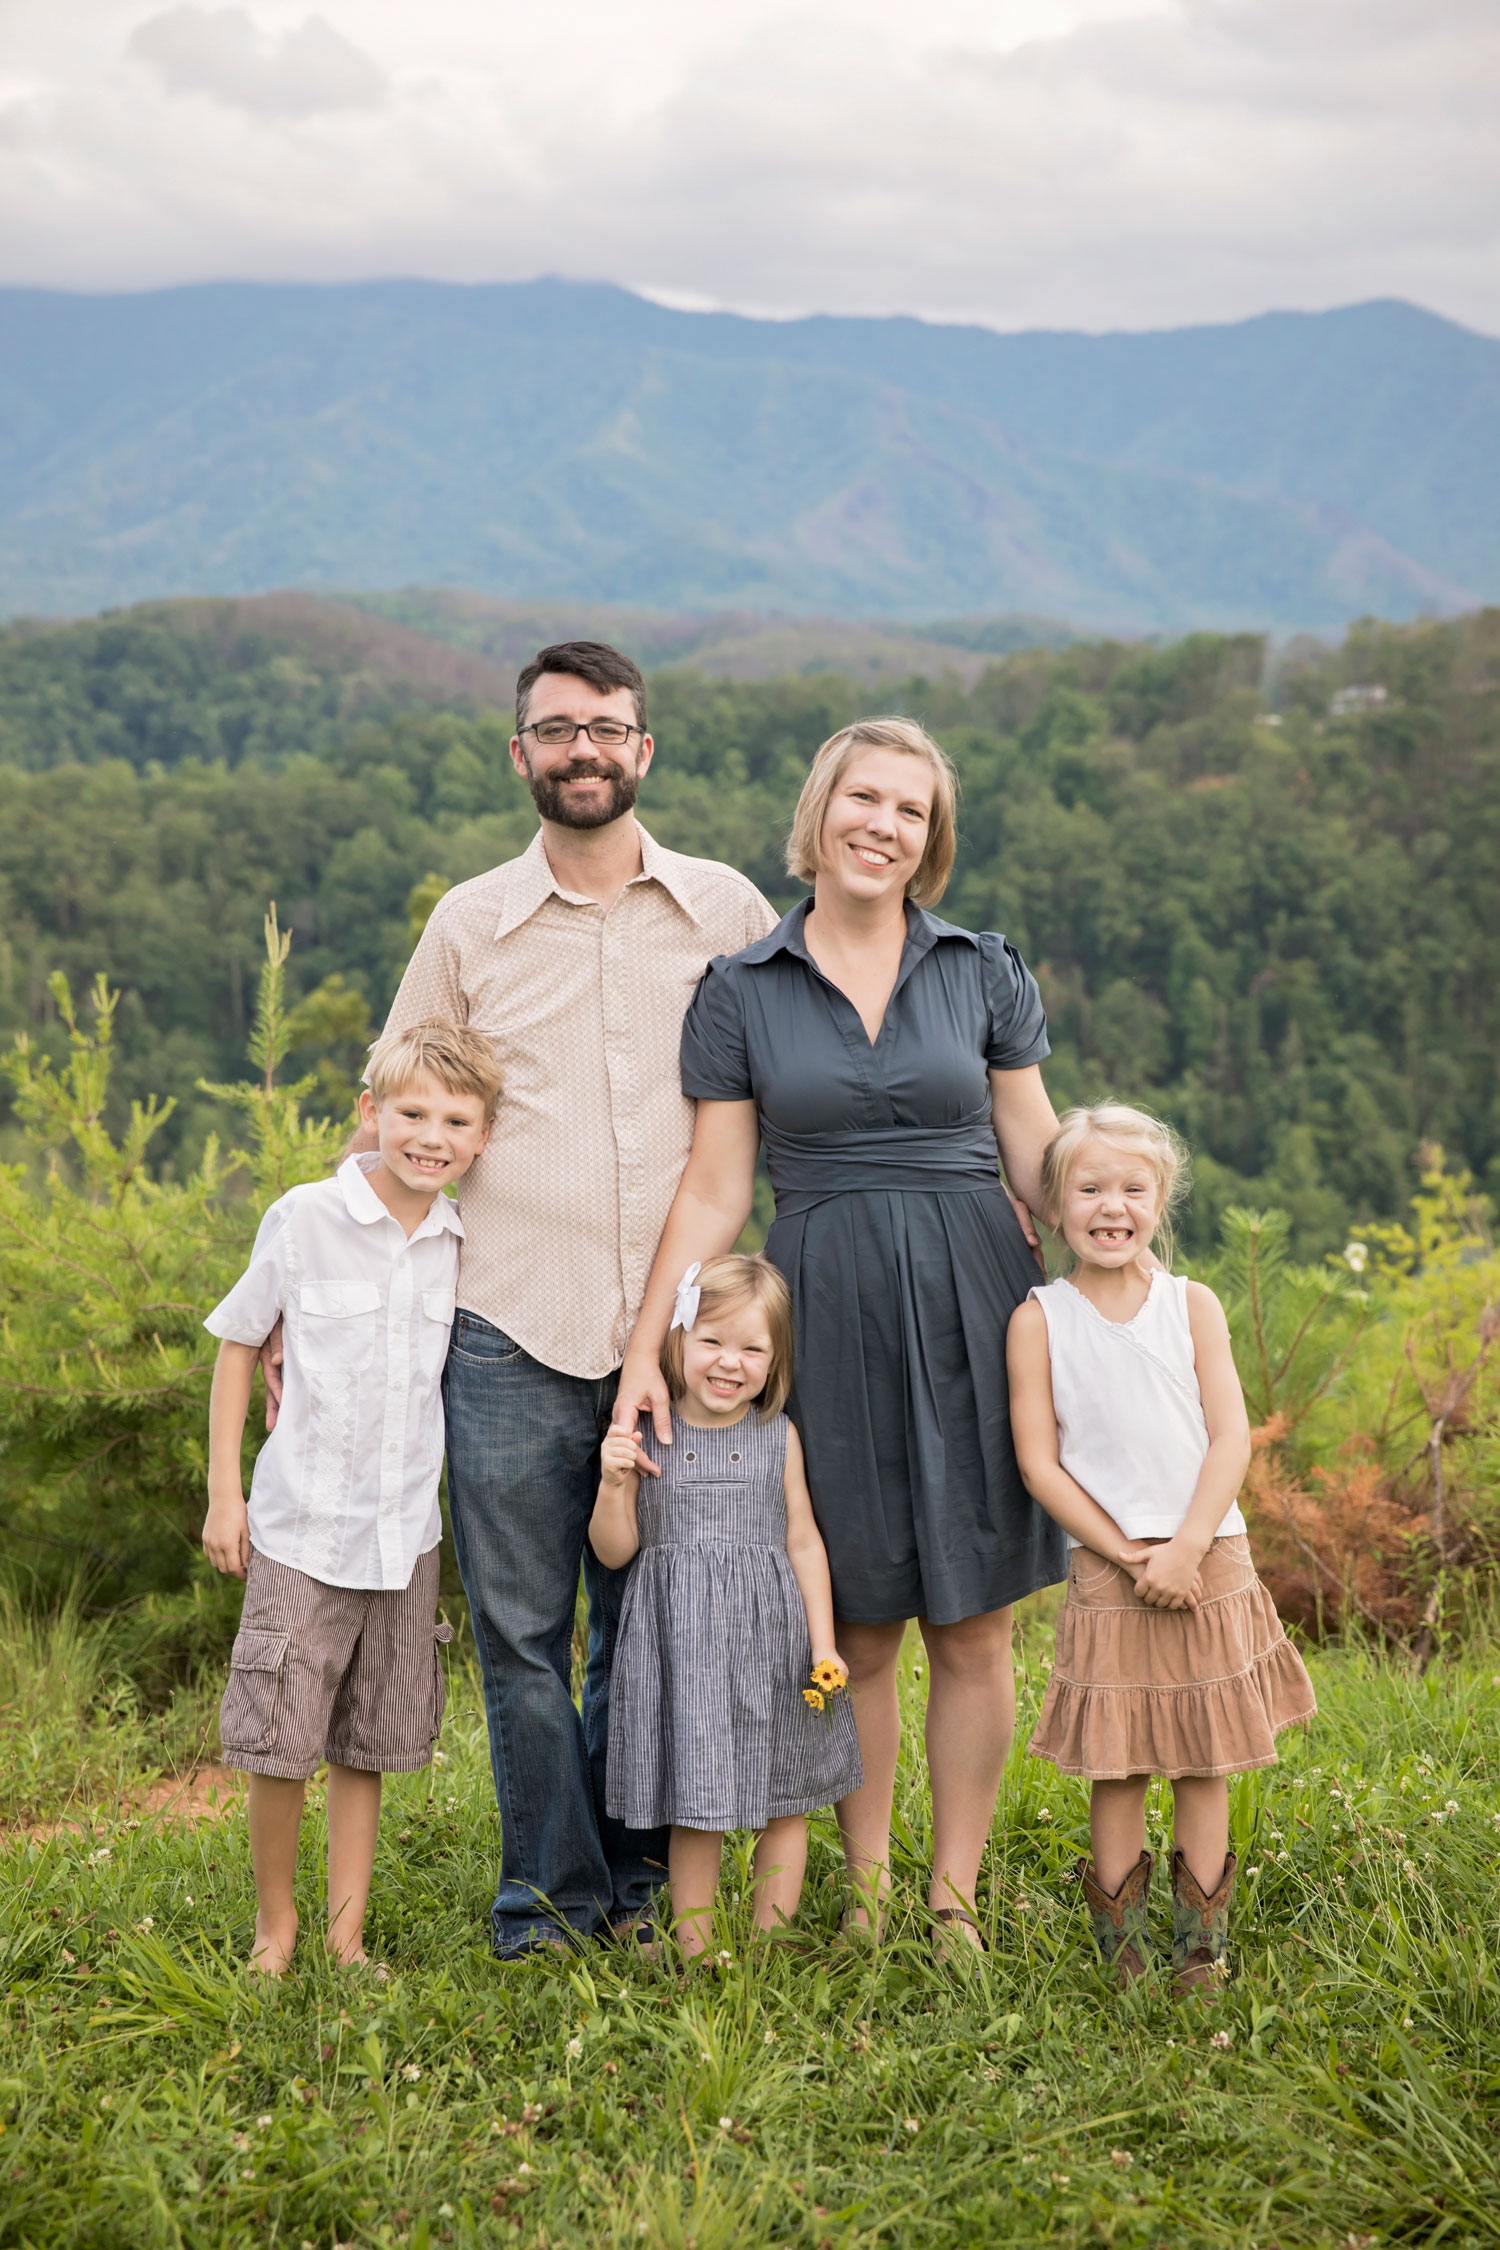 gatlinburg-photographer-smoky-mountain-family-vacation-picture.jpg